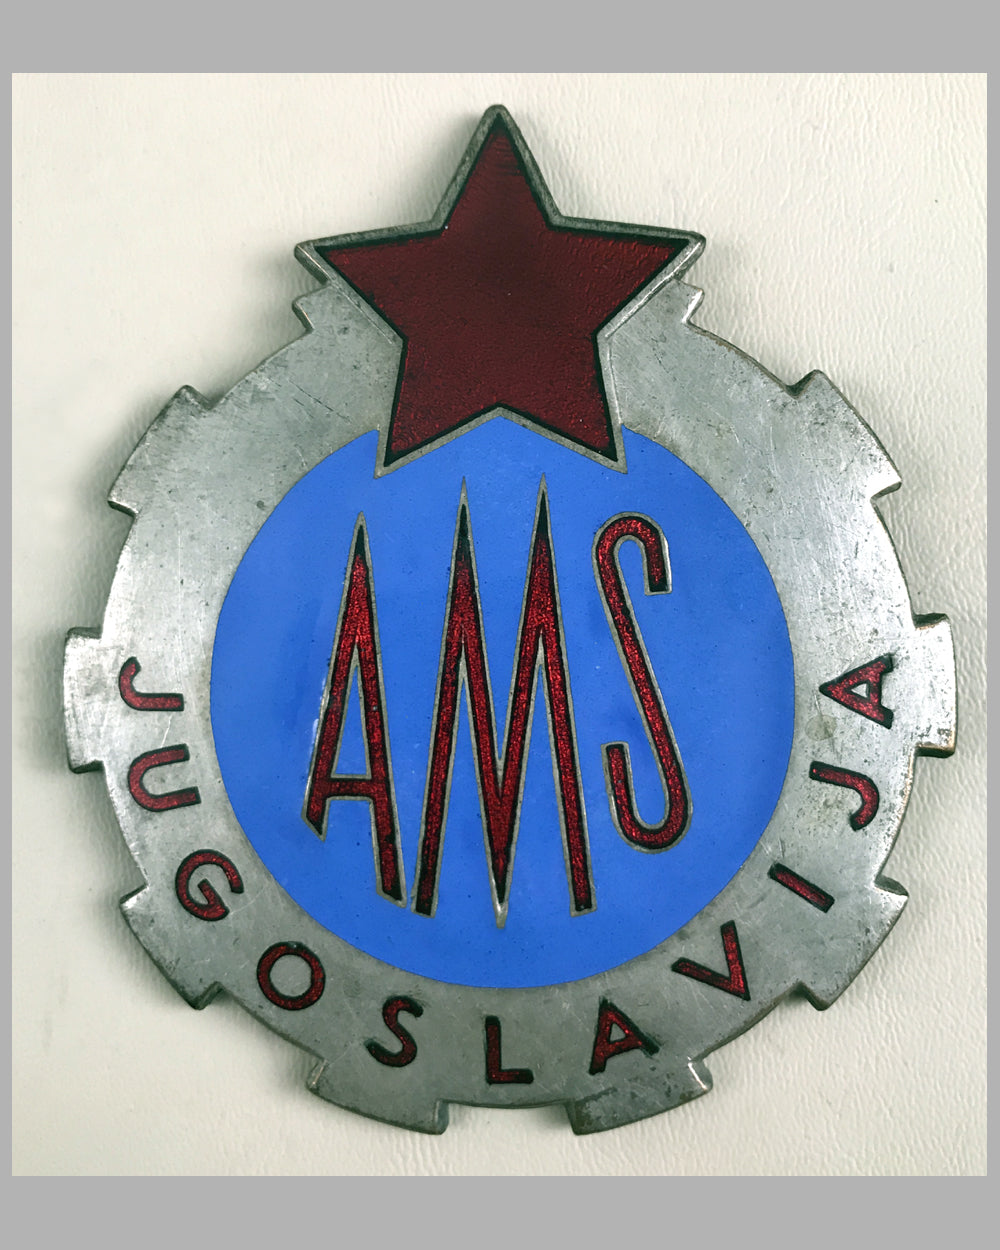 Automobile & Motorcycle Club of Yugoslavia member's grill badge